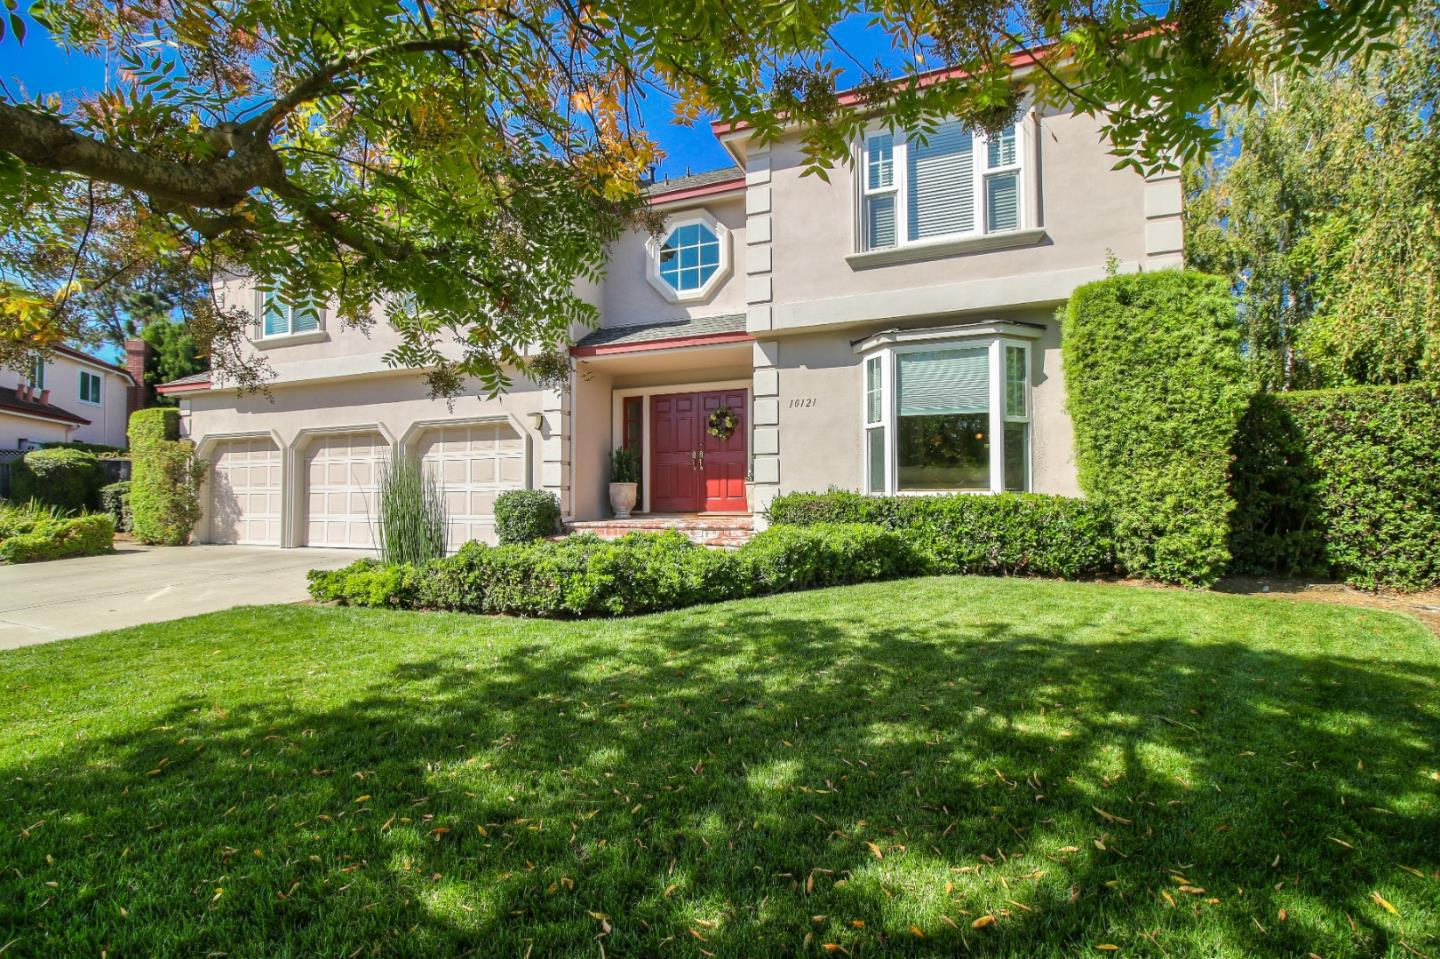 10121 WESTMINSTER CT, CUPERTINO, CA 95014